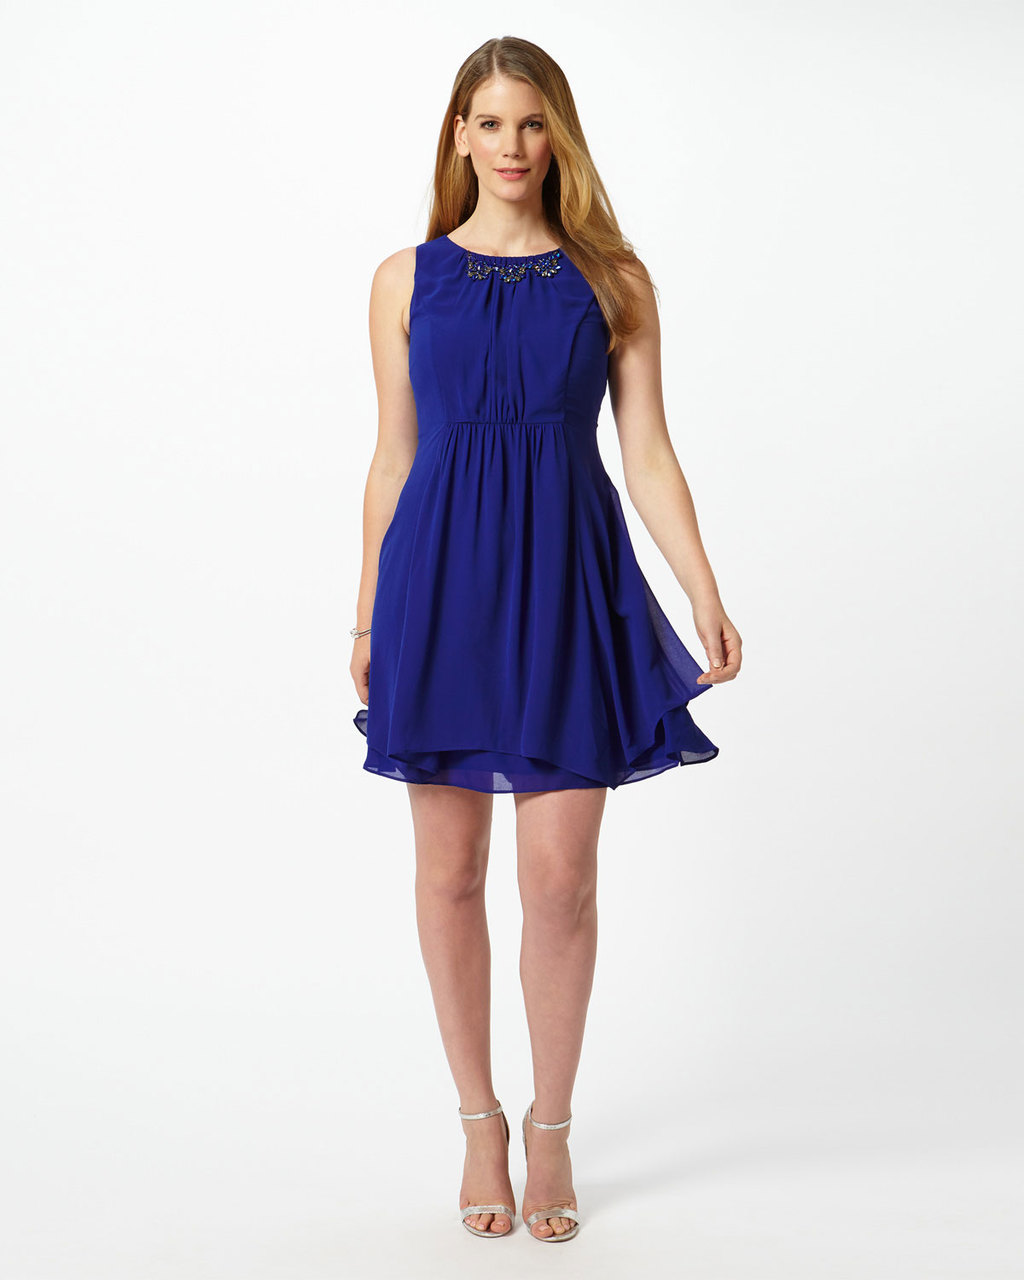 Madison Dress - length: mid thigh; pattern: plain; sleeve style: sleeveless; predominant colour: royal blue; occasions: evening; fit: fitted at waist & bust; style: fit & flare; fibres: polyester/polyamide - 100%; neckline: crew; sleeve length: sleeveless; texture group: sheer fabrics/chiffon/organza etc.; pattern type: fabric; season: s/s 2016; wardrobe: event